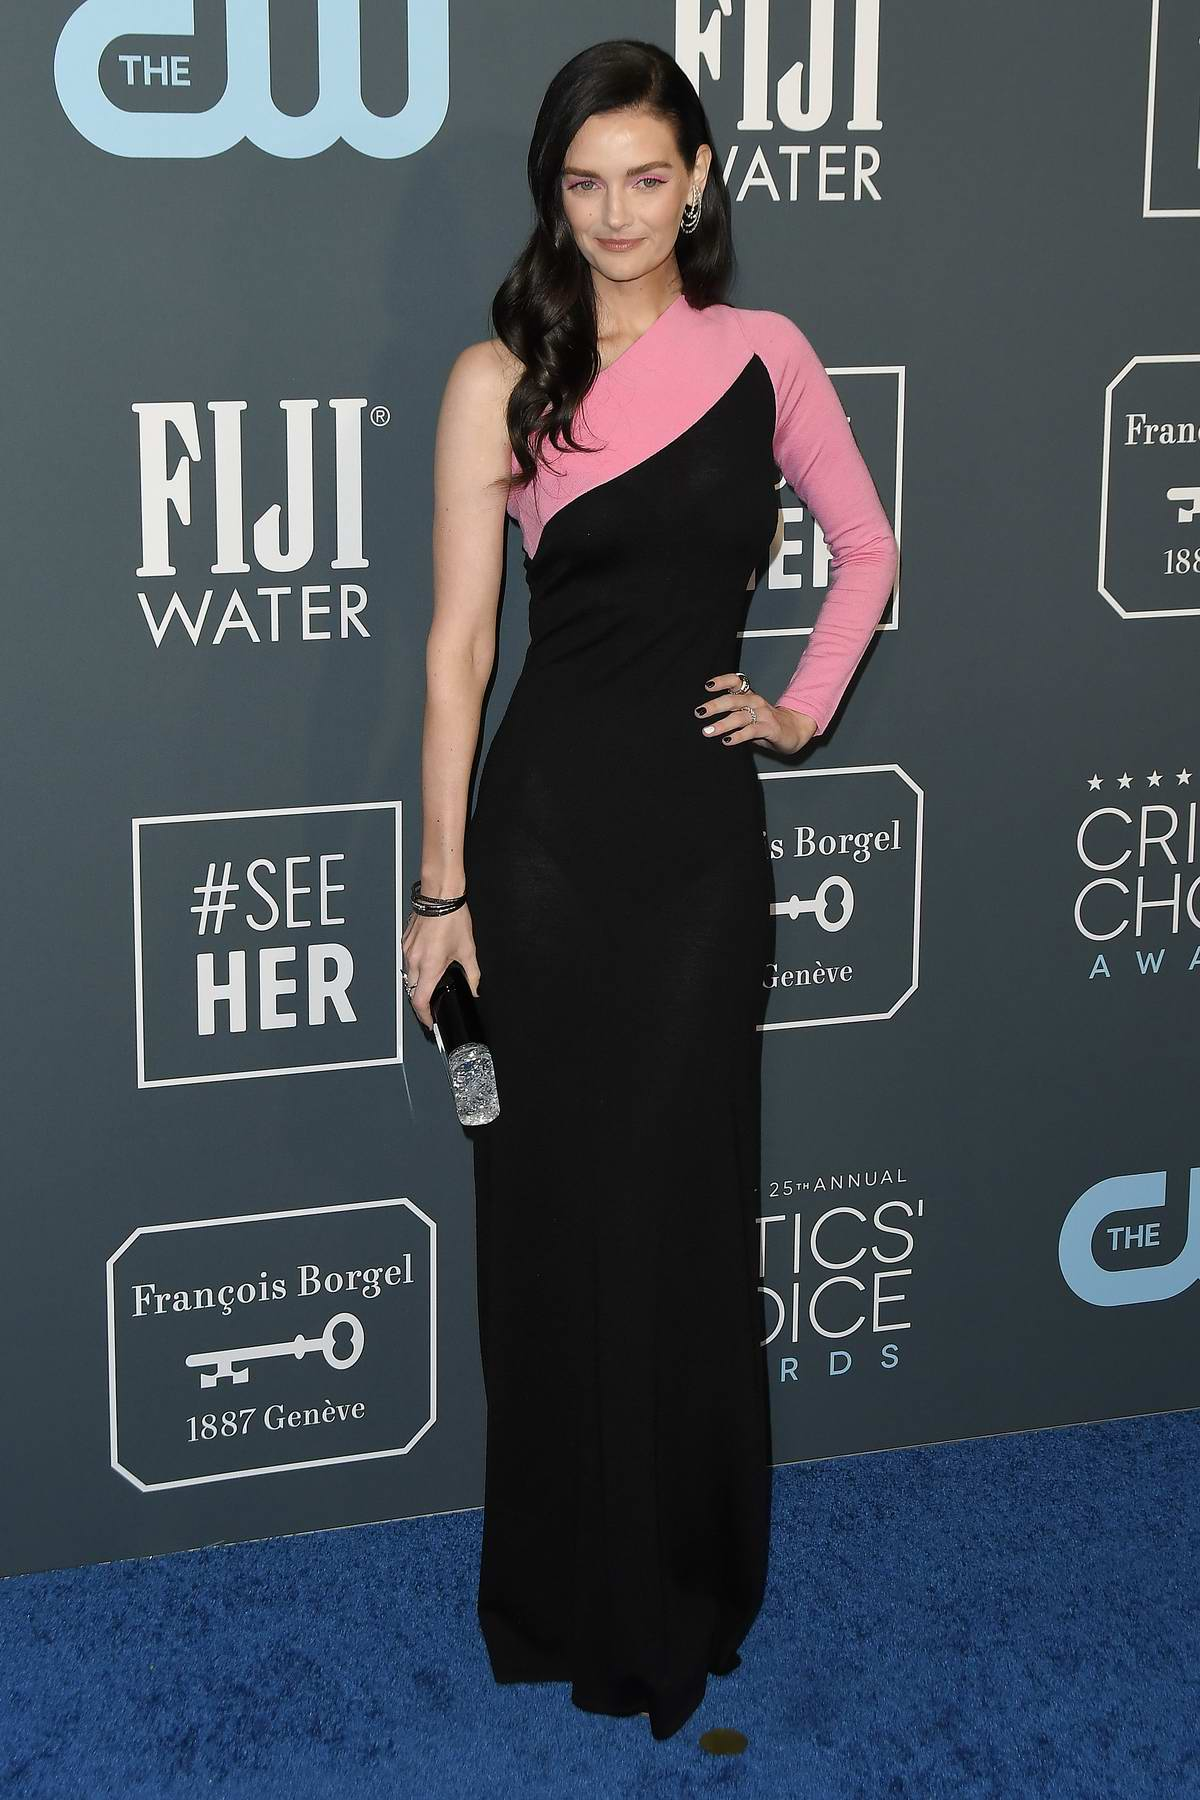 Lydia Hearst attends the 25th Annual Critics' Choice Awards at Barker Hangar in Santa Monica, California